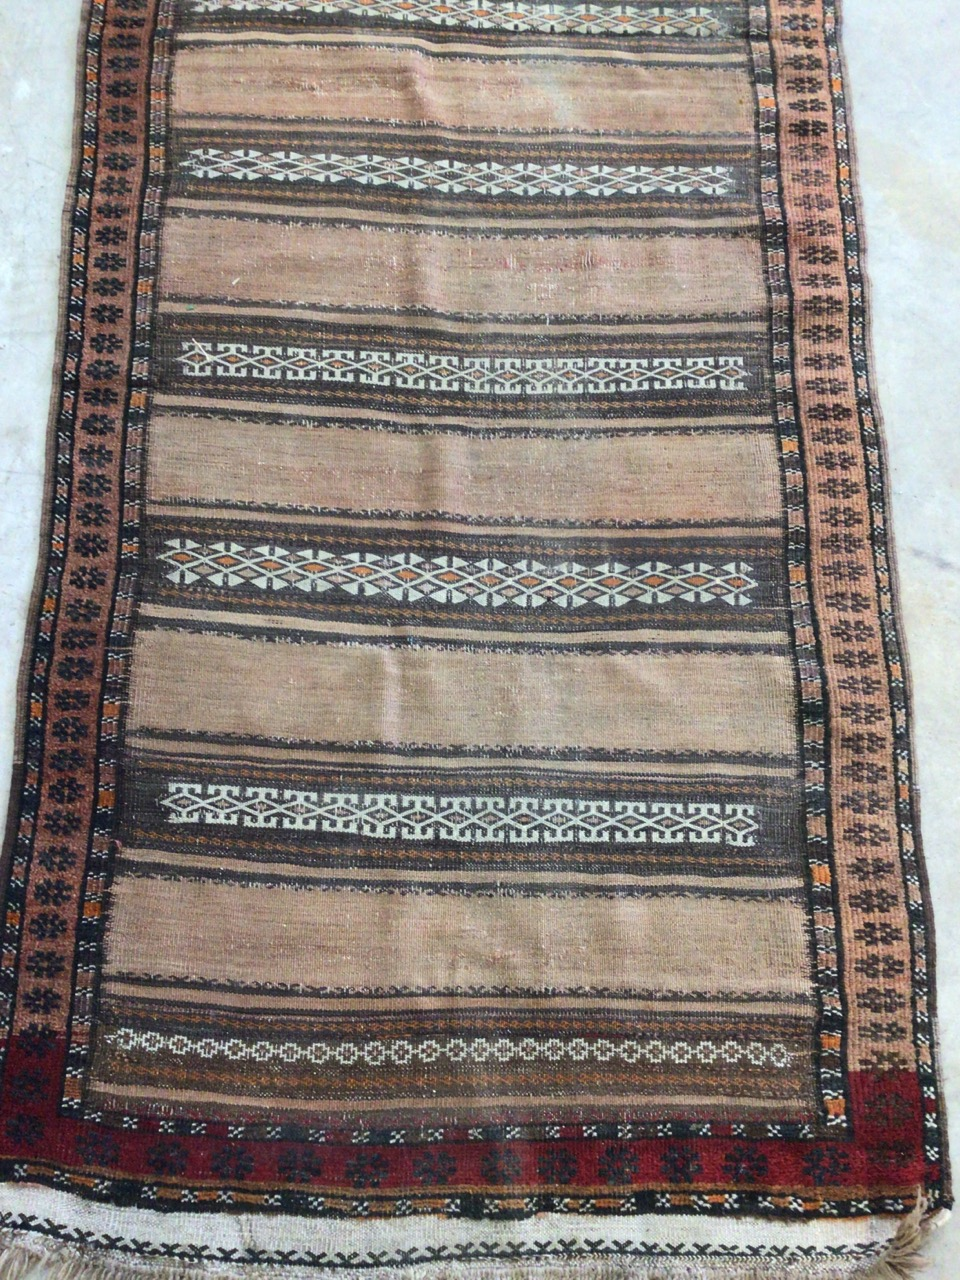 An antique eastern runner with Aztec influence. W:290cm x H:105cm - Image 3 of 4